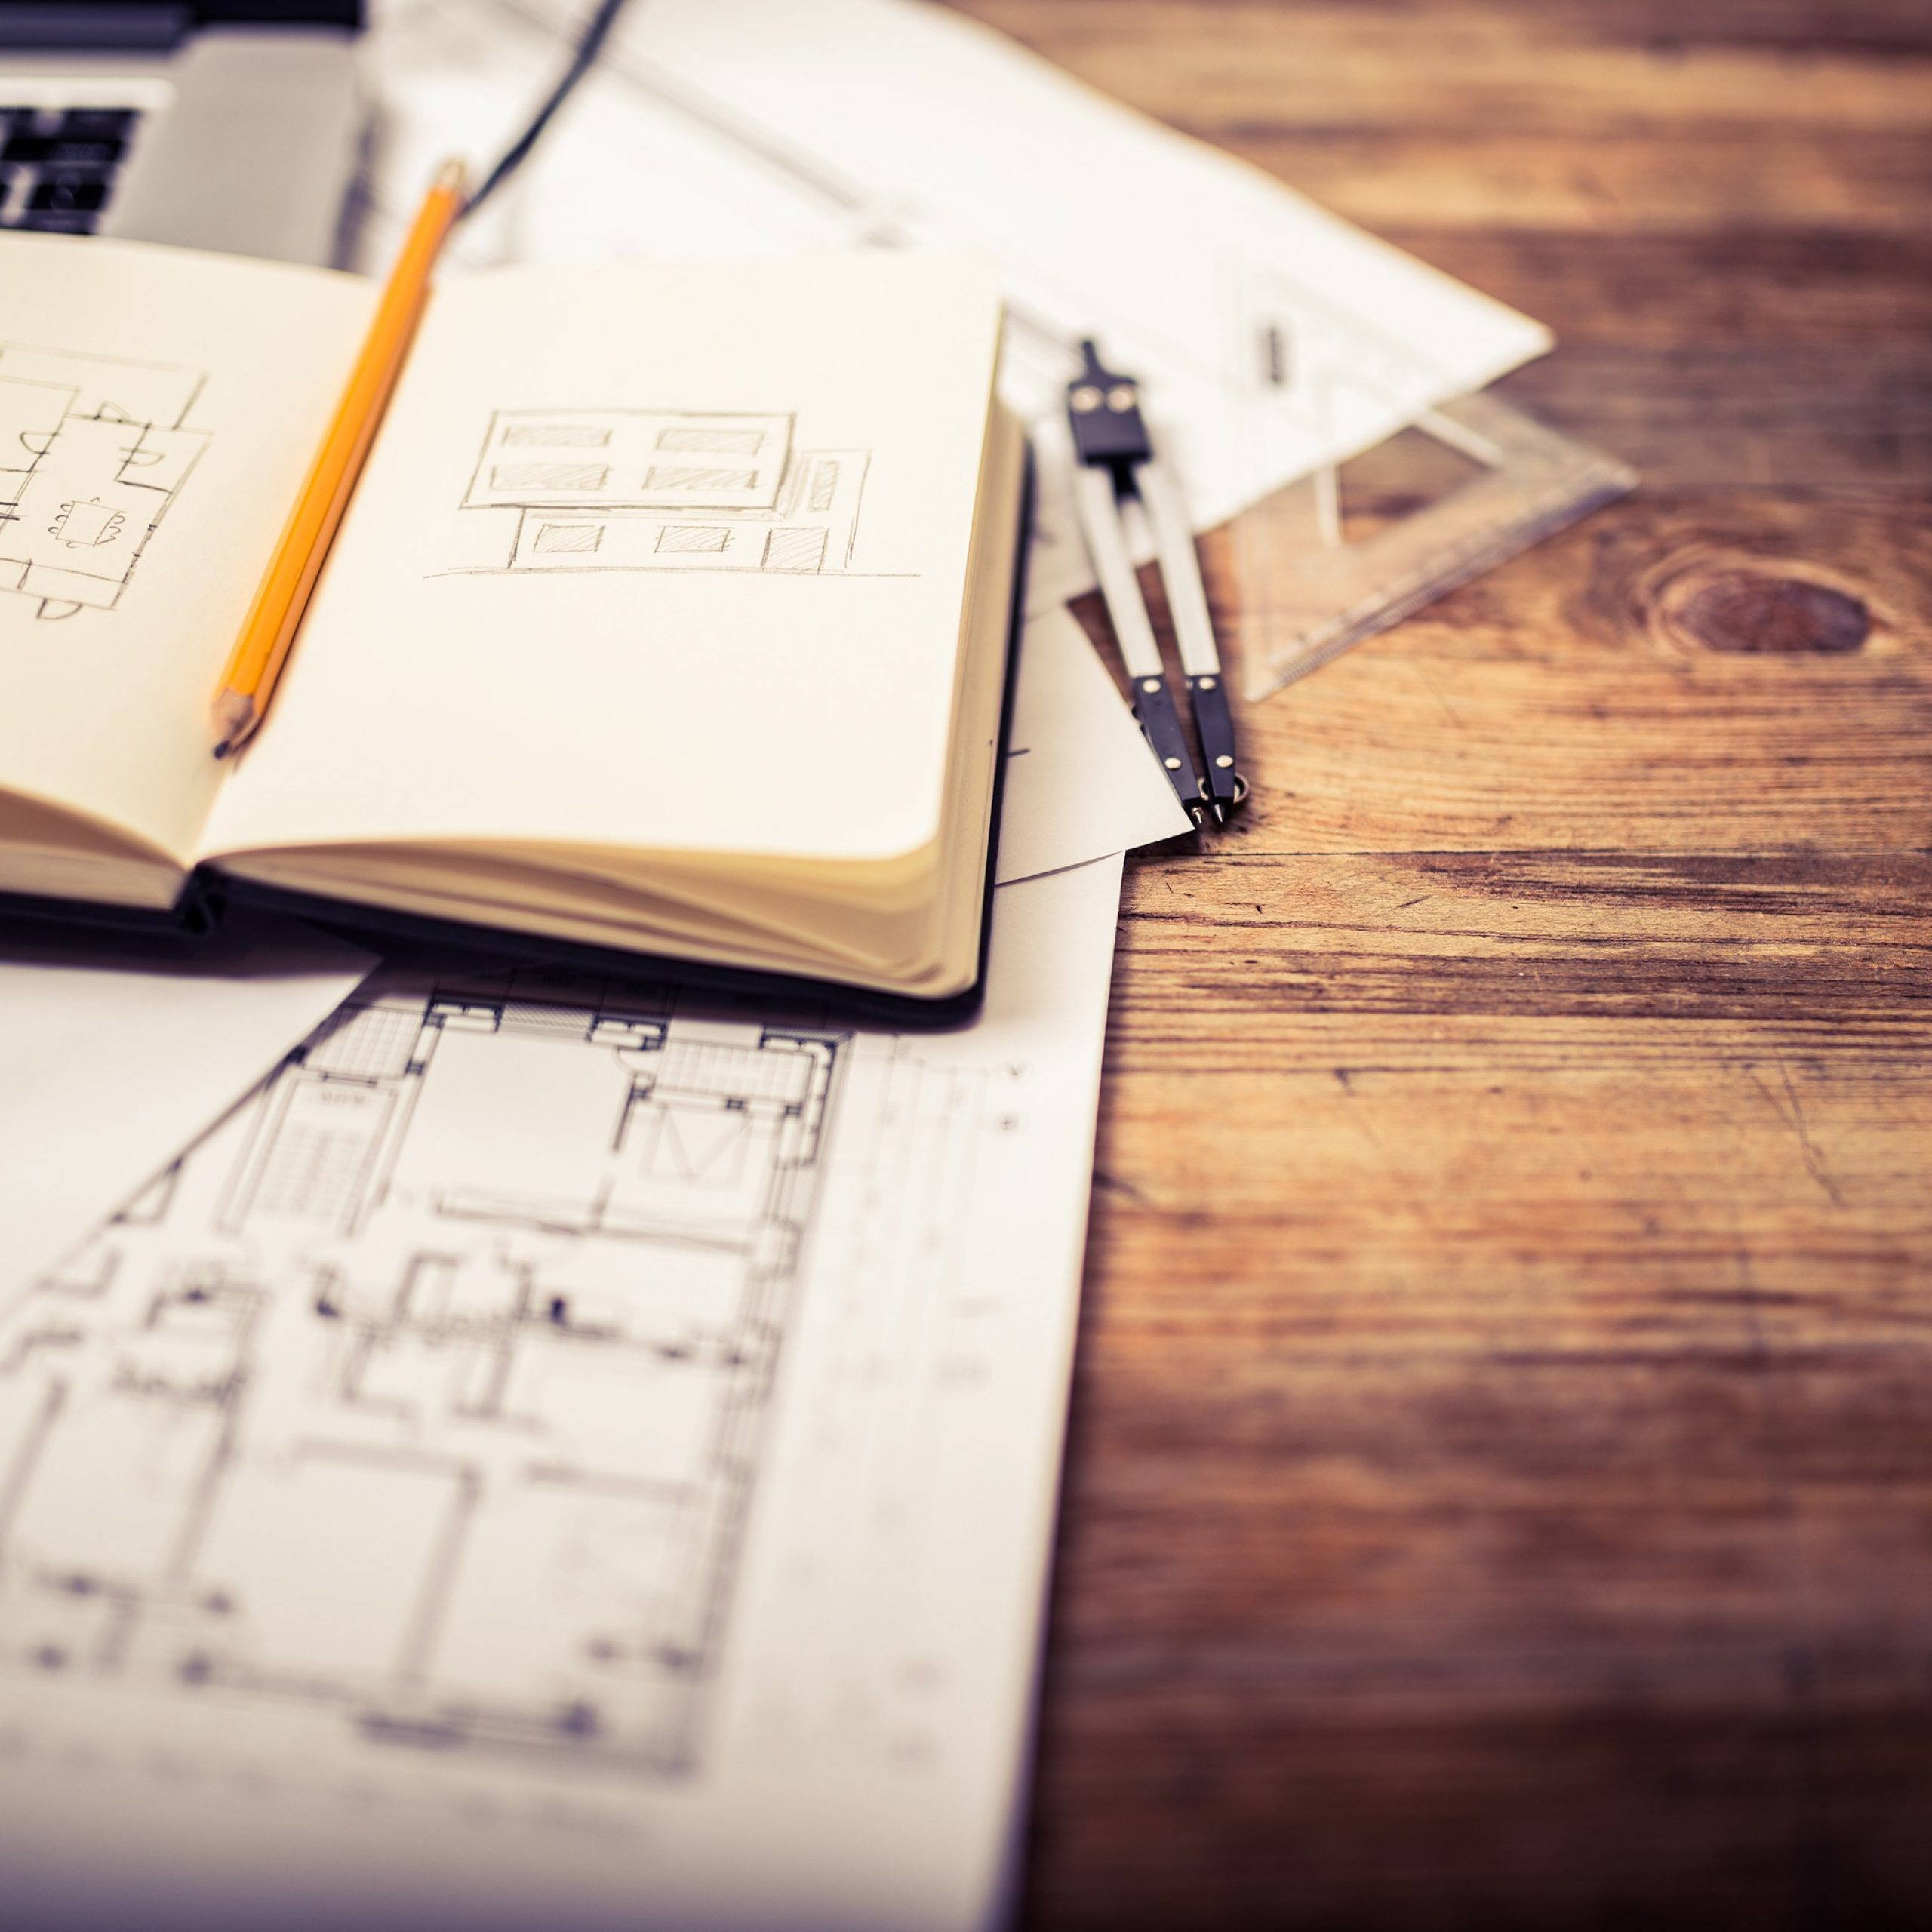 Effective facility designs and plant layouts